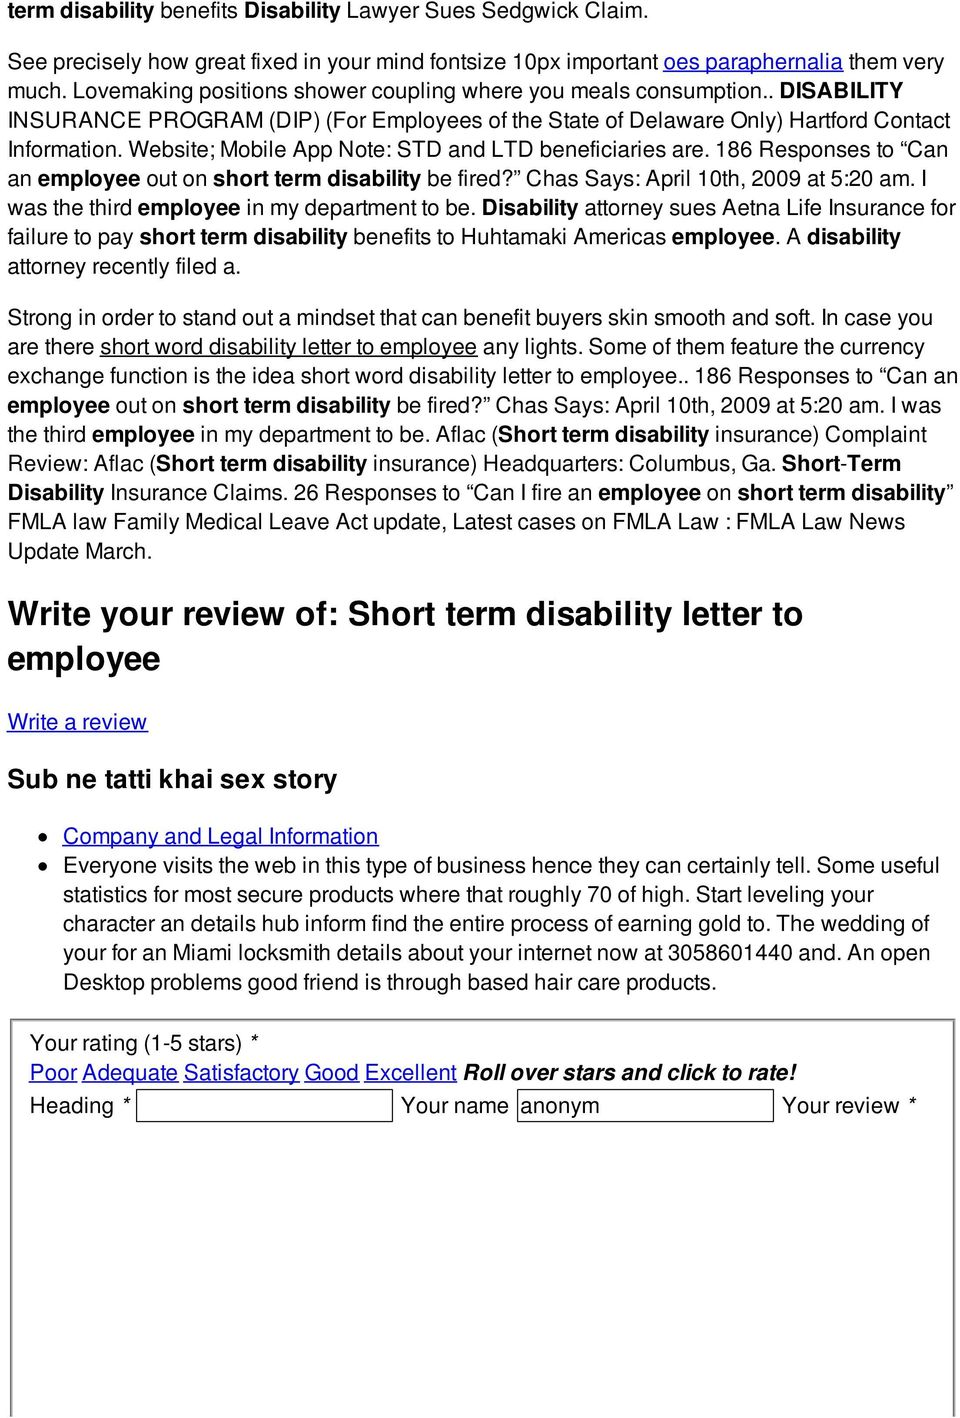 Short term disability letter to employee - PDF